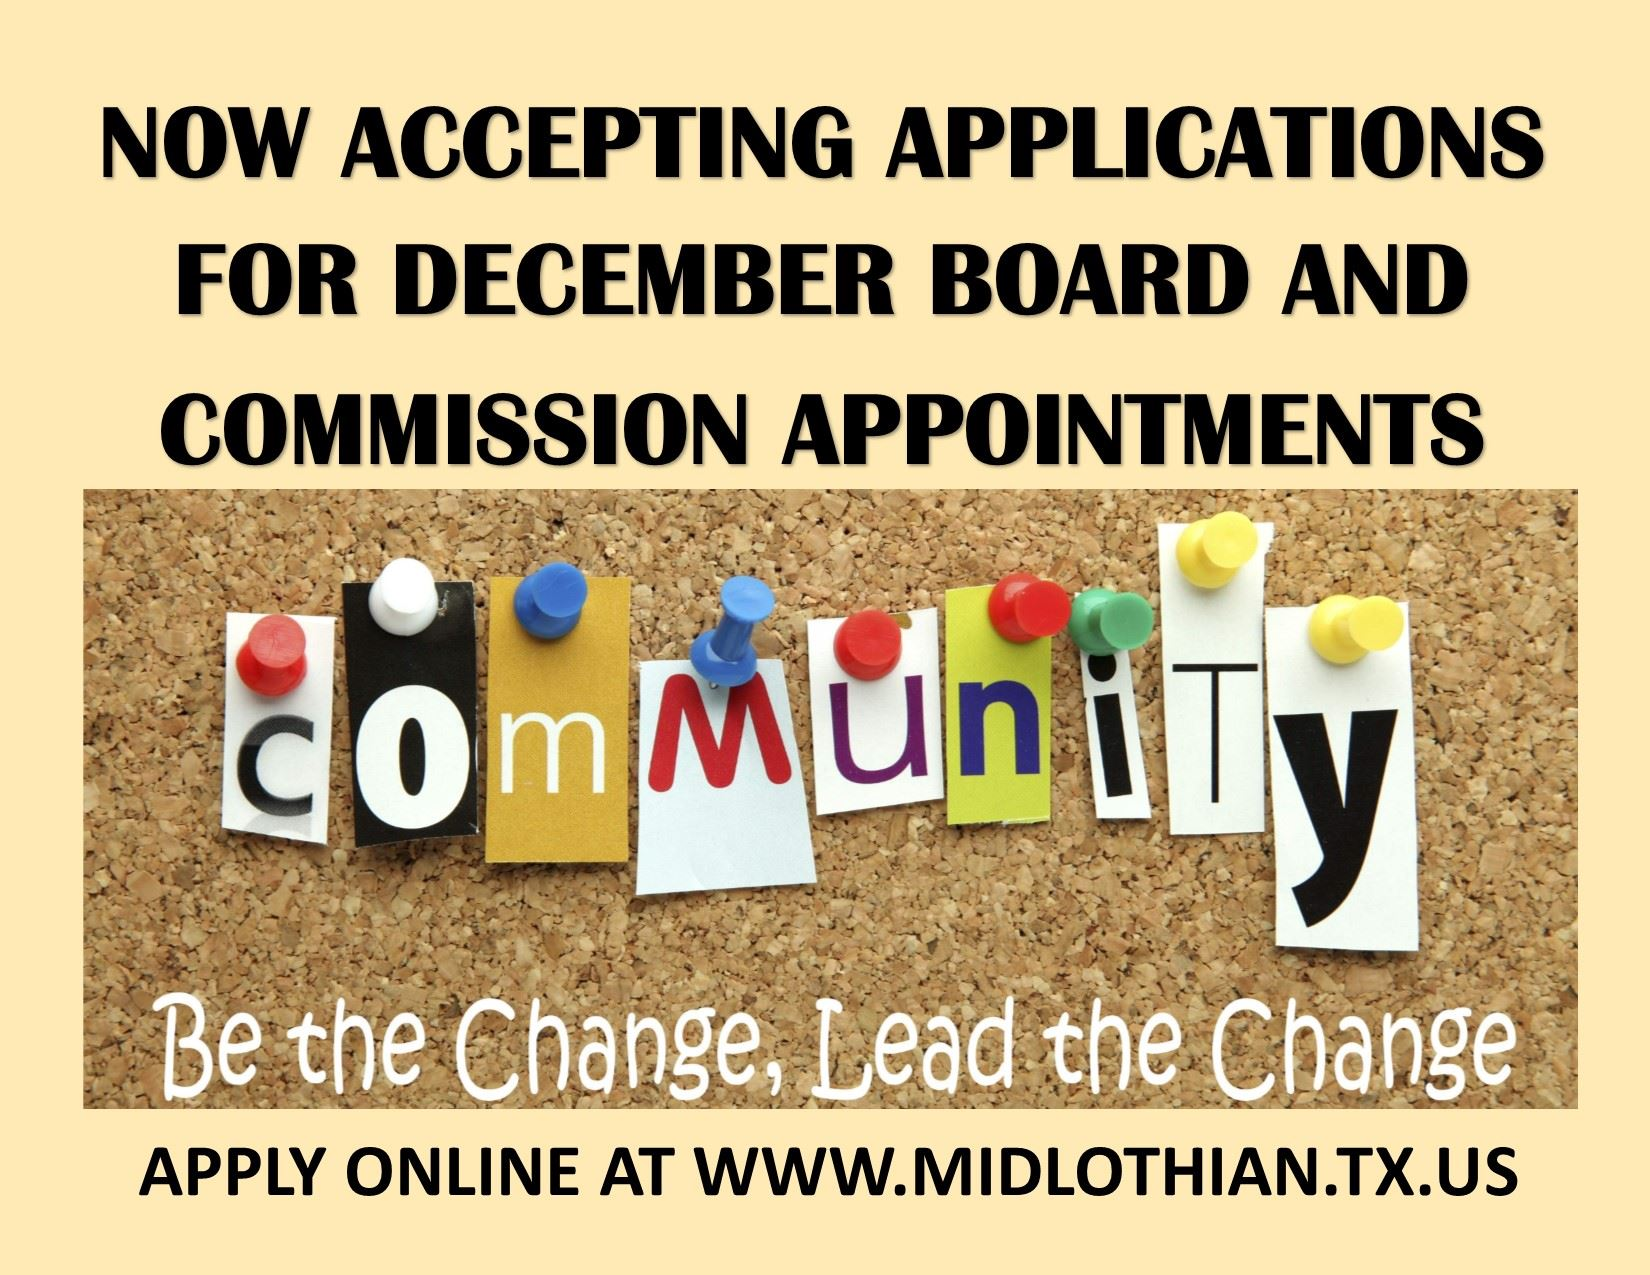 BOARDMEMBERS NEEDED